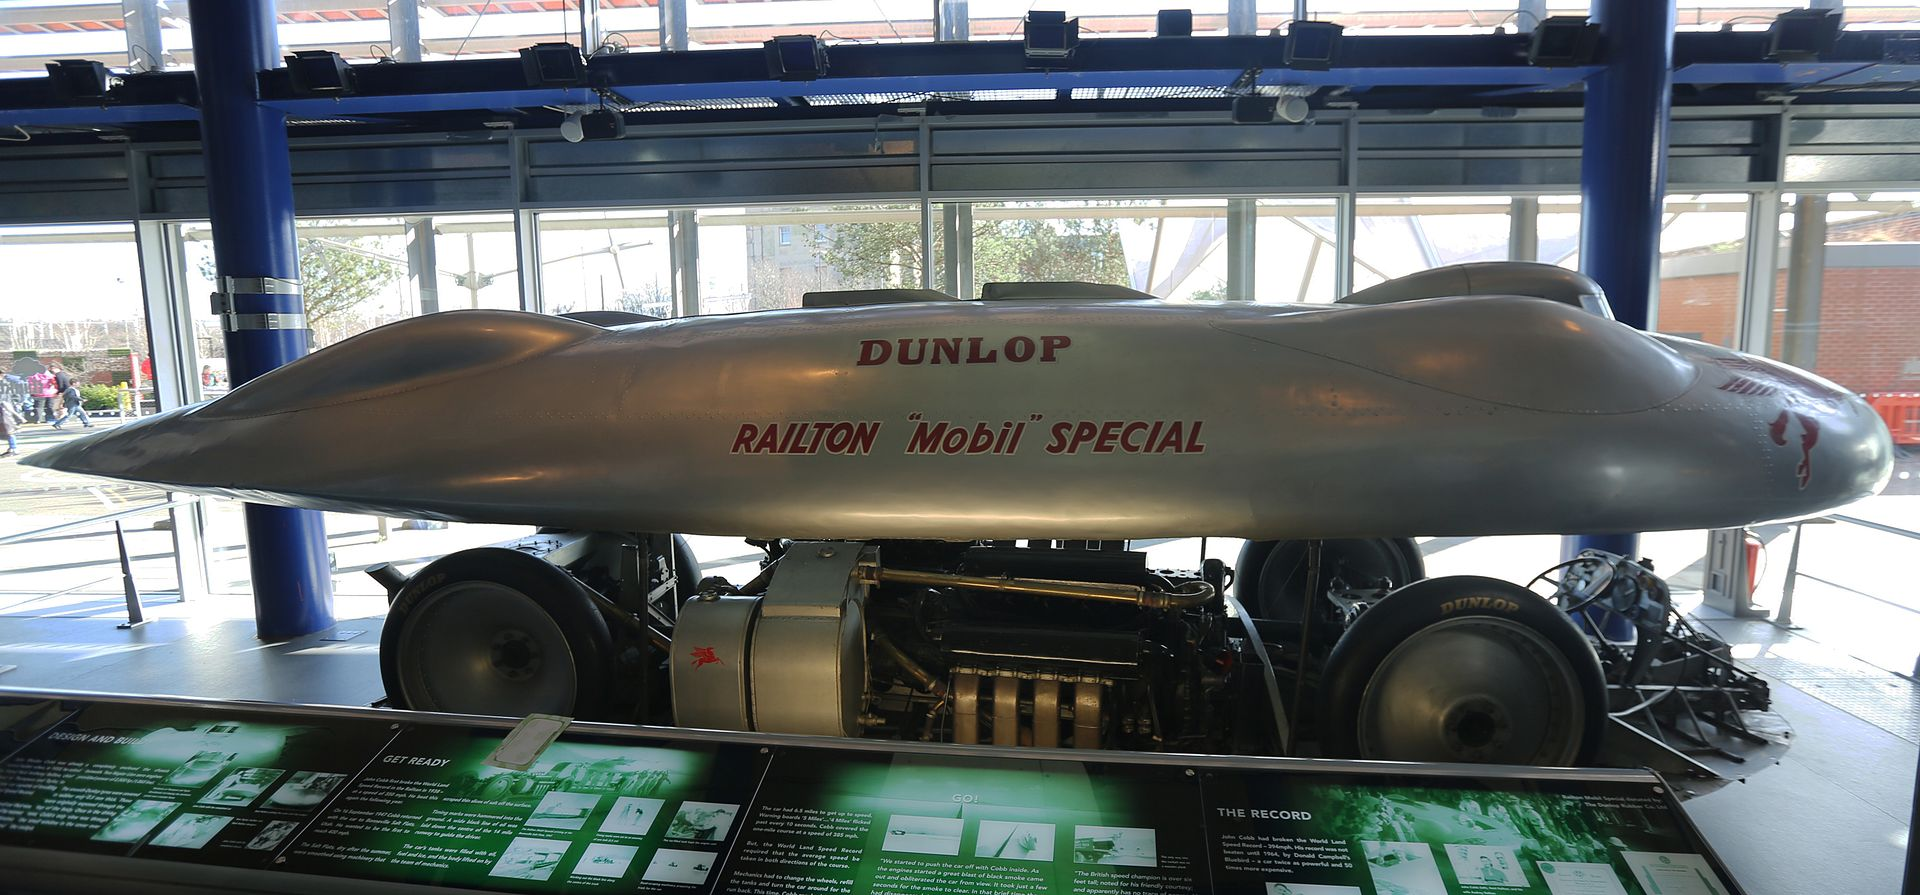 John Cobb's Railton Special on display